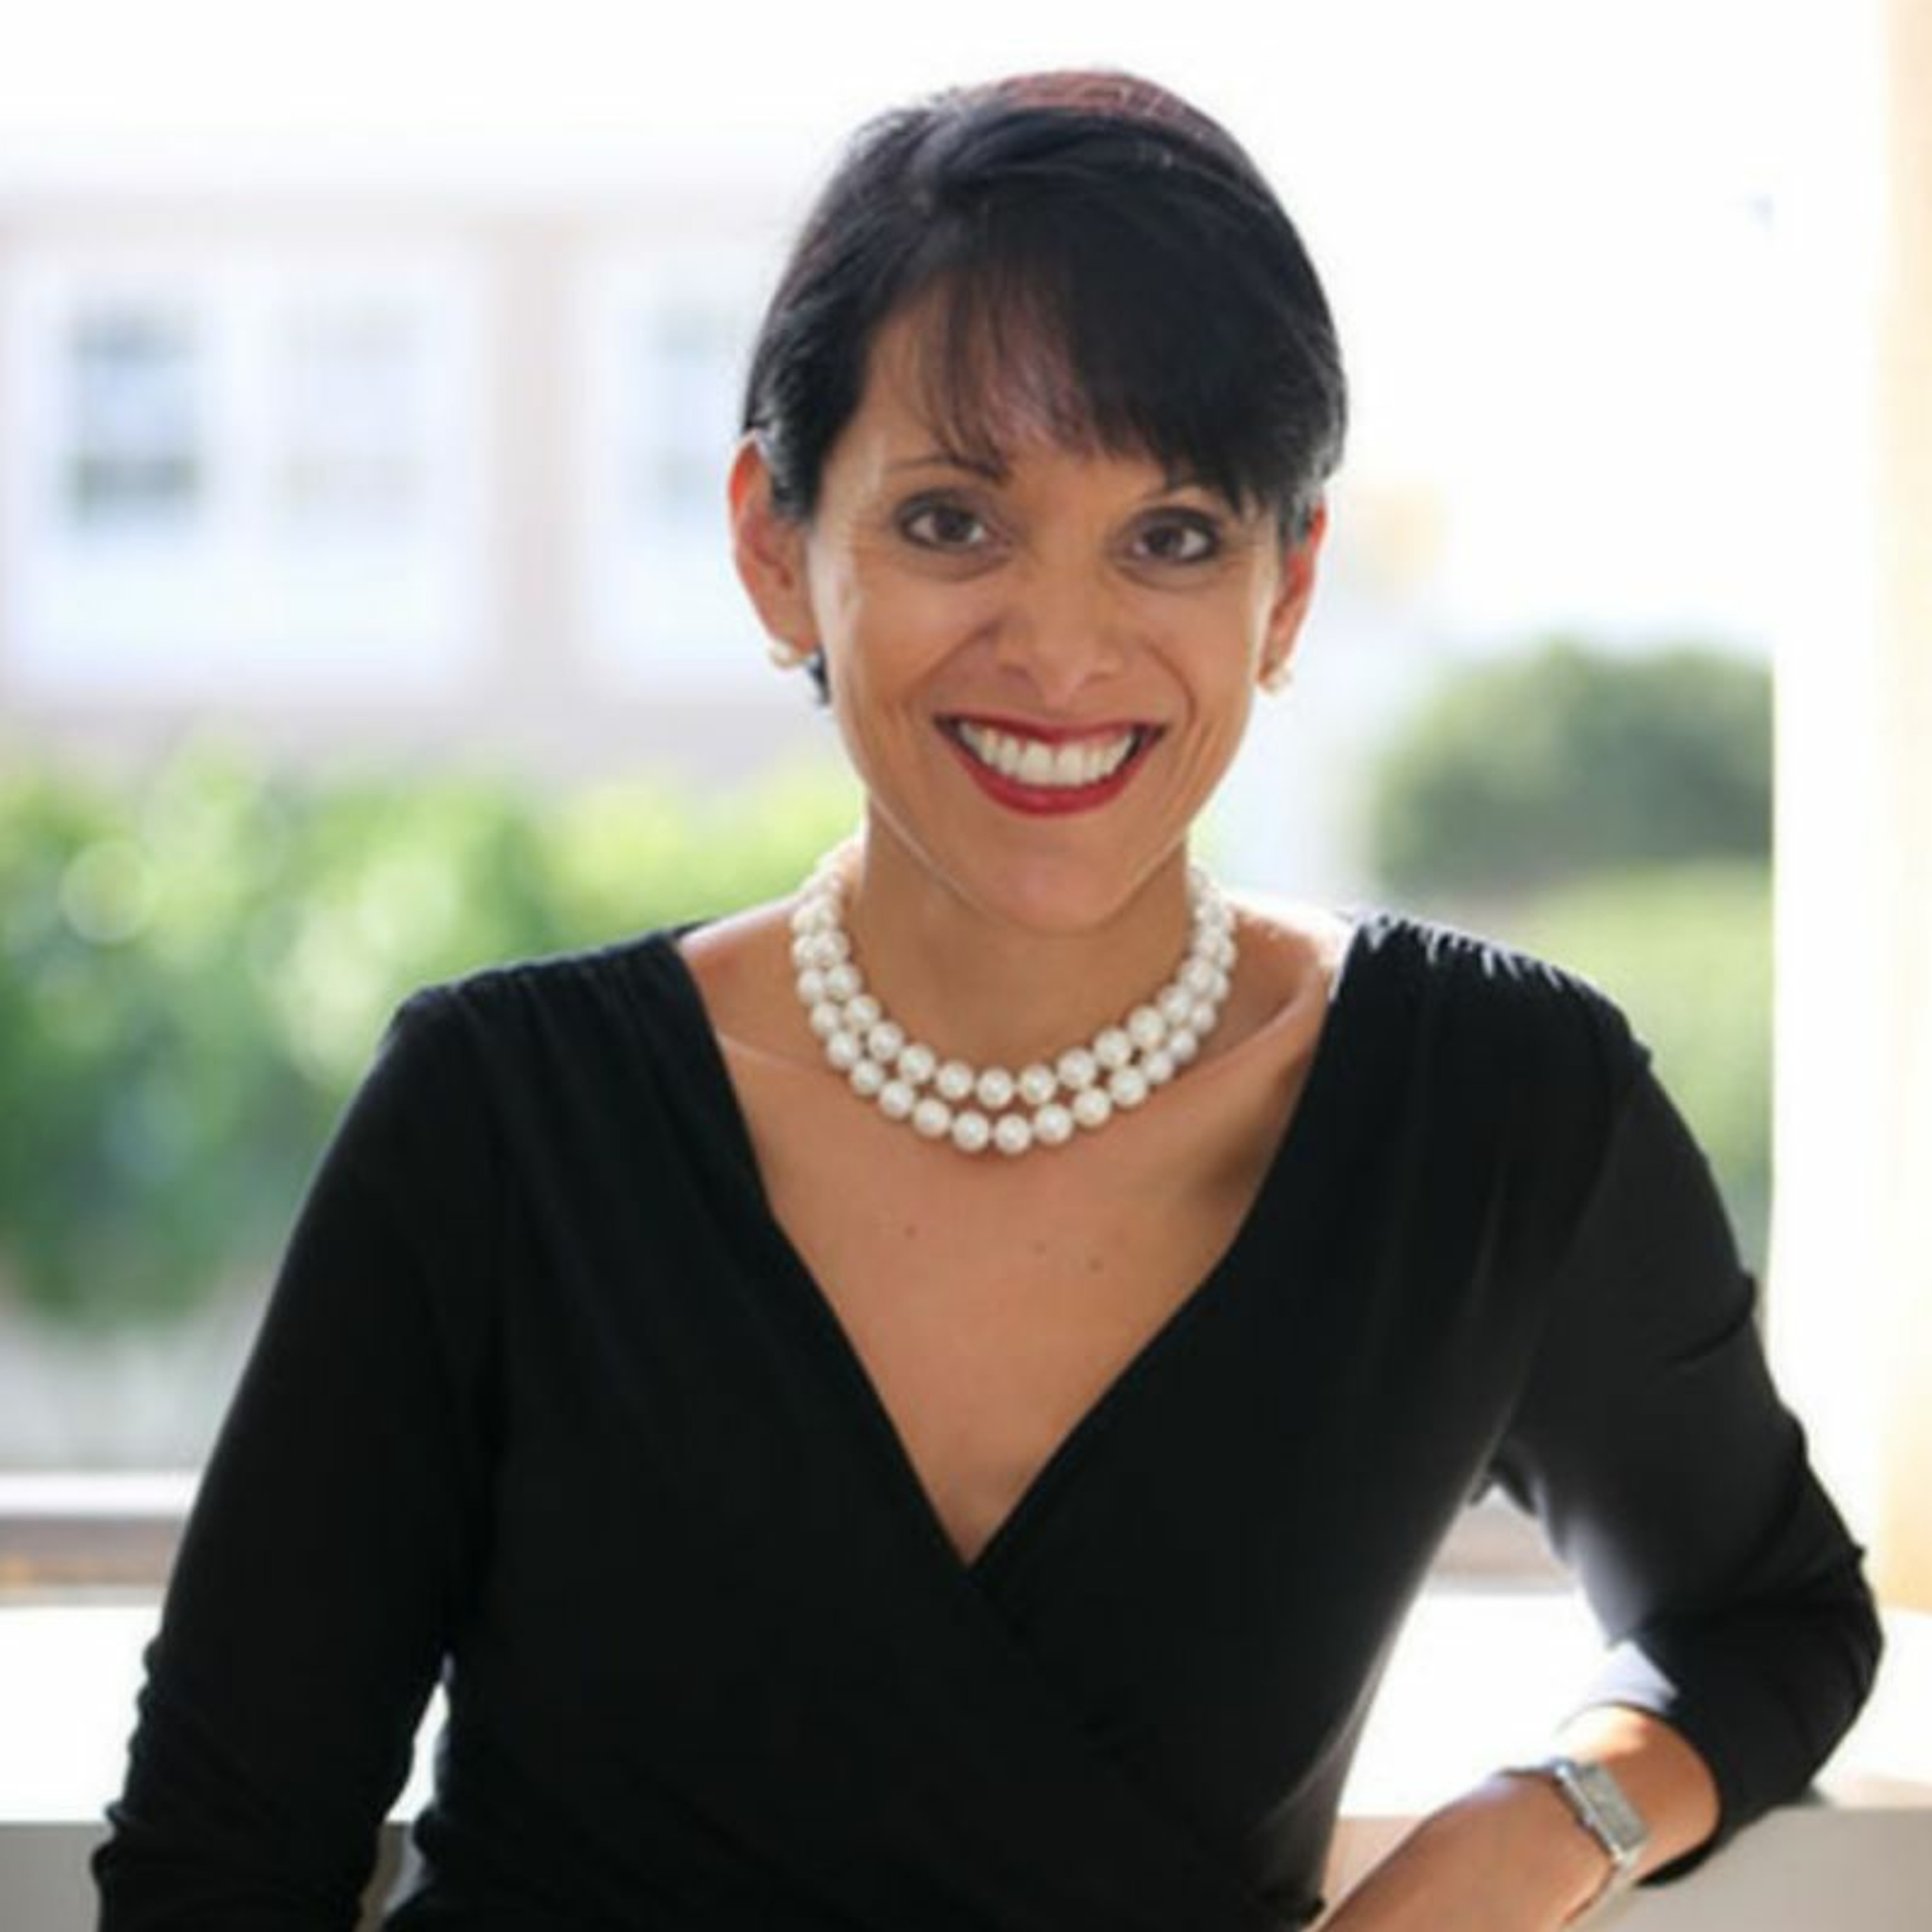 Cachet Consulting's Anita Mendiratta on how Africa's tourism industry has progressed since the 90's